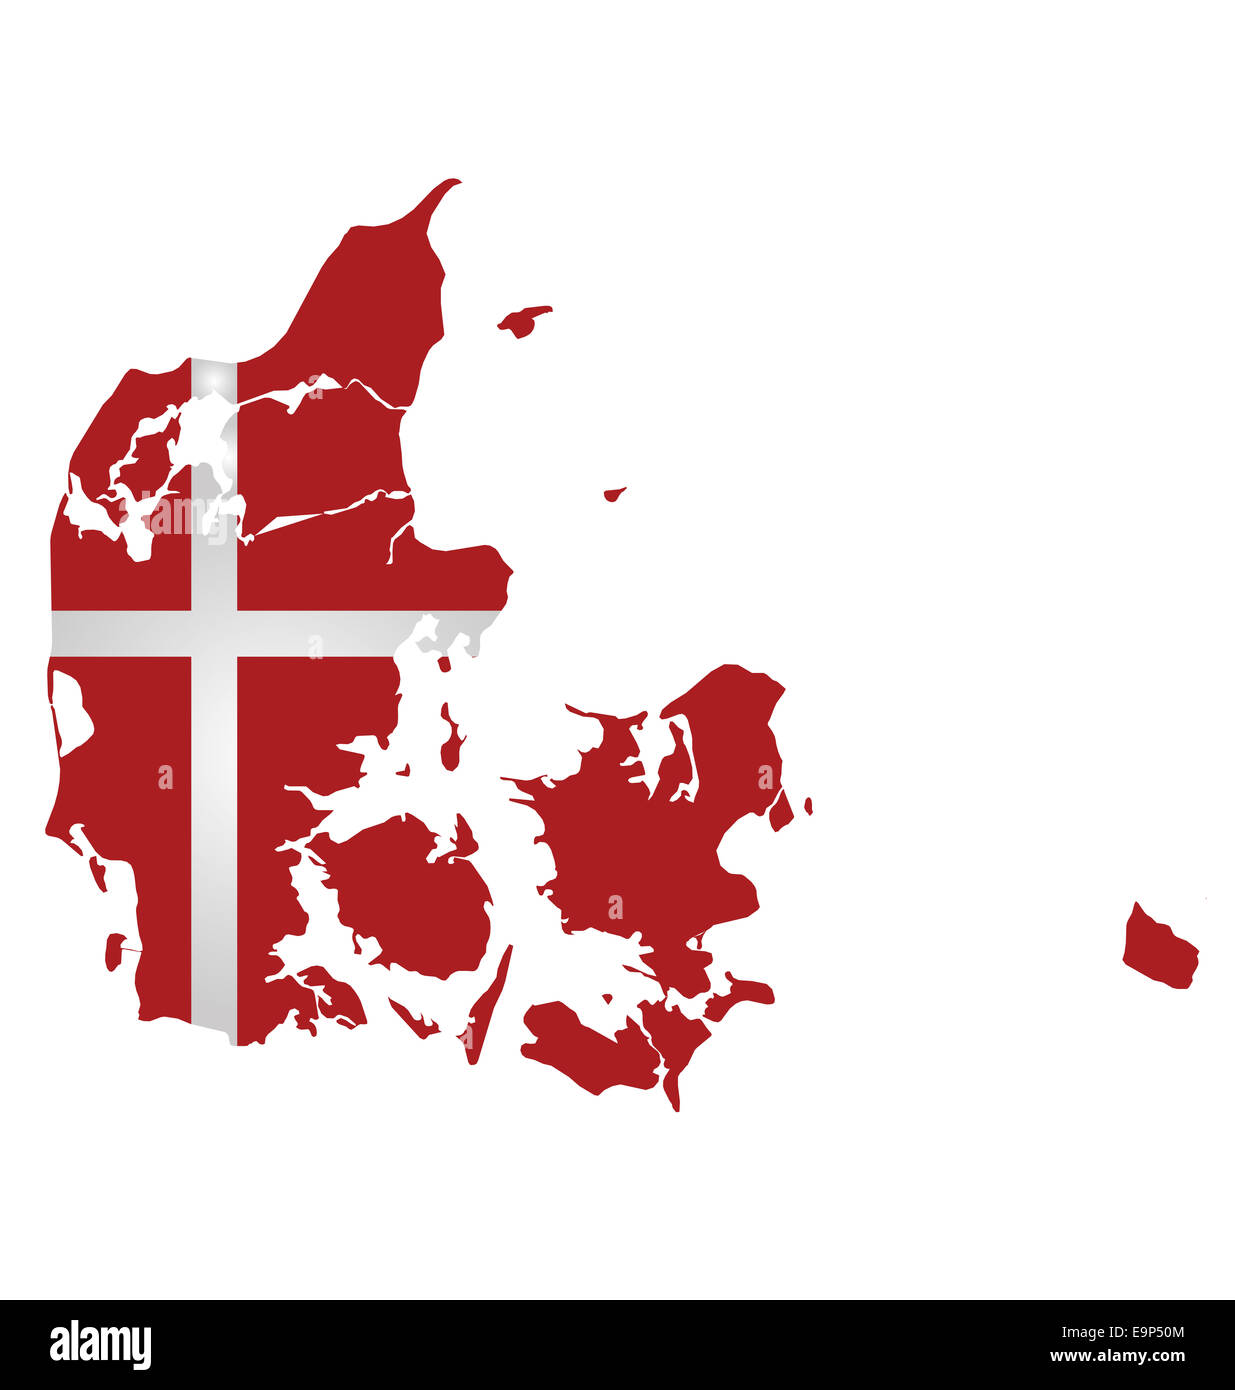 Flag of the Kingdom of Denmark overlaid on outline map Stock Photo Kingdom Of Denmark Map on russian federation map, united arab emirates map, republic of mexico map, people's republic of china map, commonwealth of dominica map, republic of turkey map, republic of maldives map, republic of nauru map, republic of cyprus map, khmer kingdom map, bosnia and herzegovina map, republic of moldova map, united kingdom map, state of israel map, republic of croatia map, antigua and barbuda map, republic of korea map, state of new mexico map, republic of kenya map,